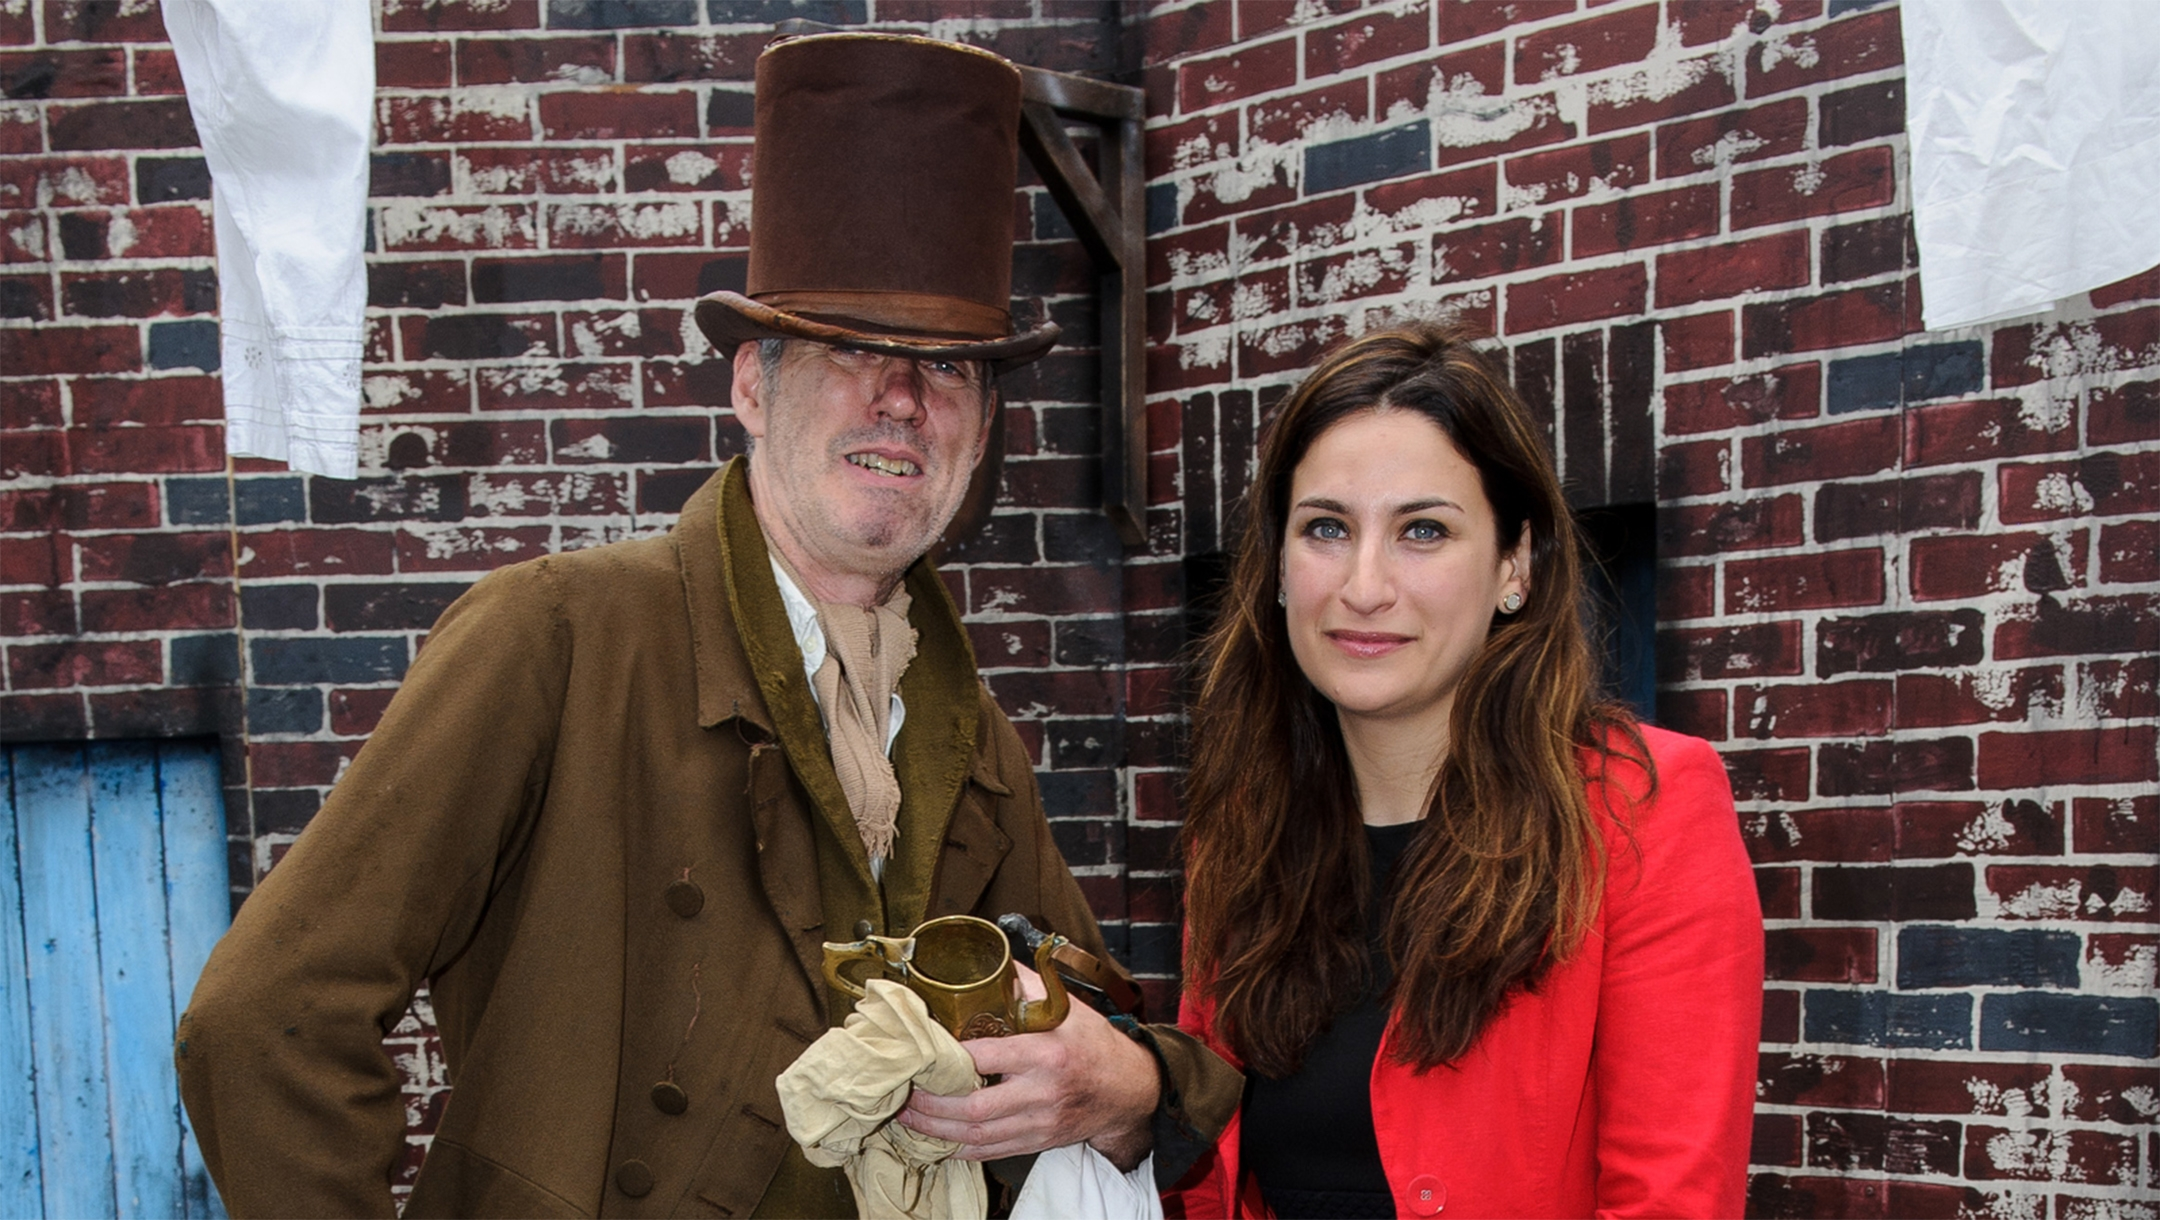 Gabe Friedman Just now Luciana Berger meeting an actor at an event raisibng awarness to access to clean water in London on July 21, 2015. Courtesy of Luciana Berger